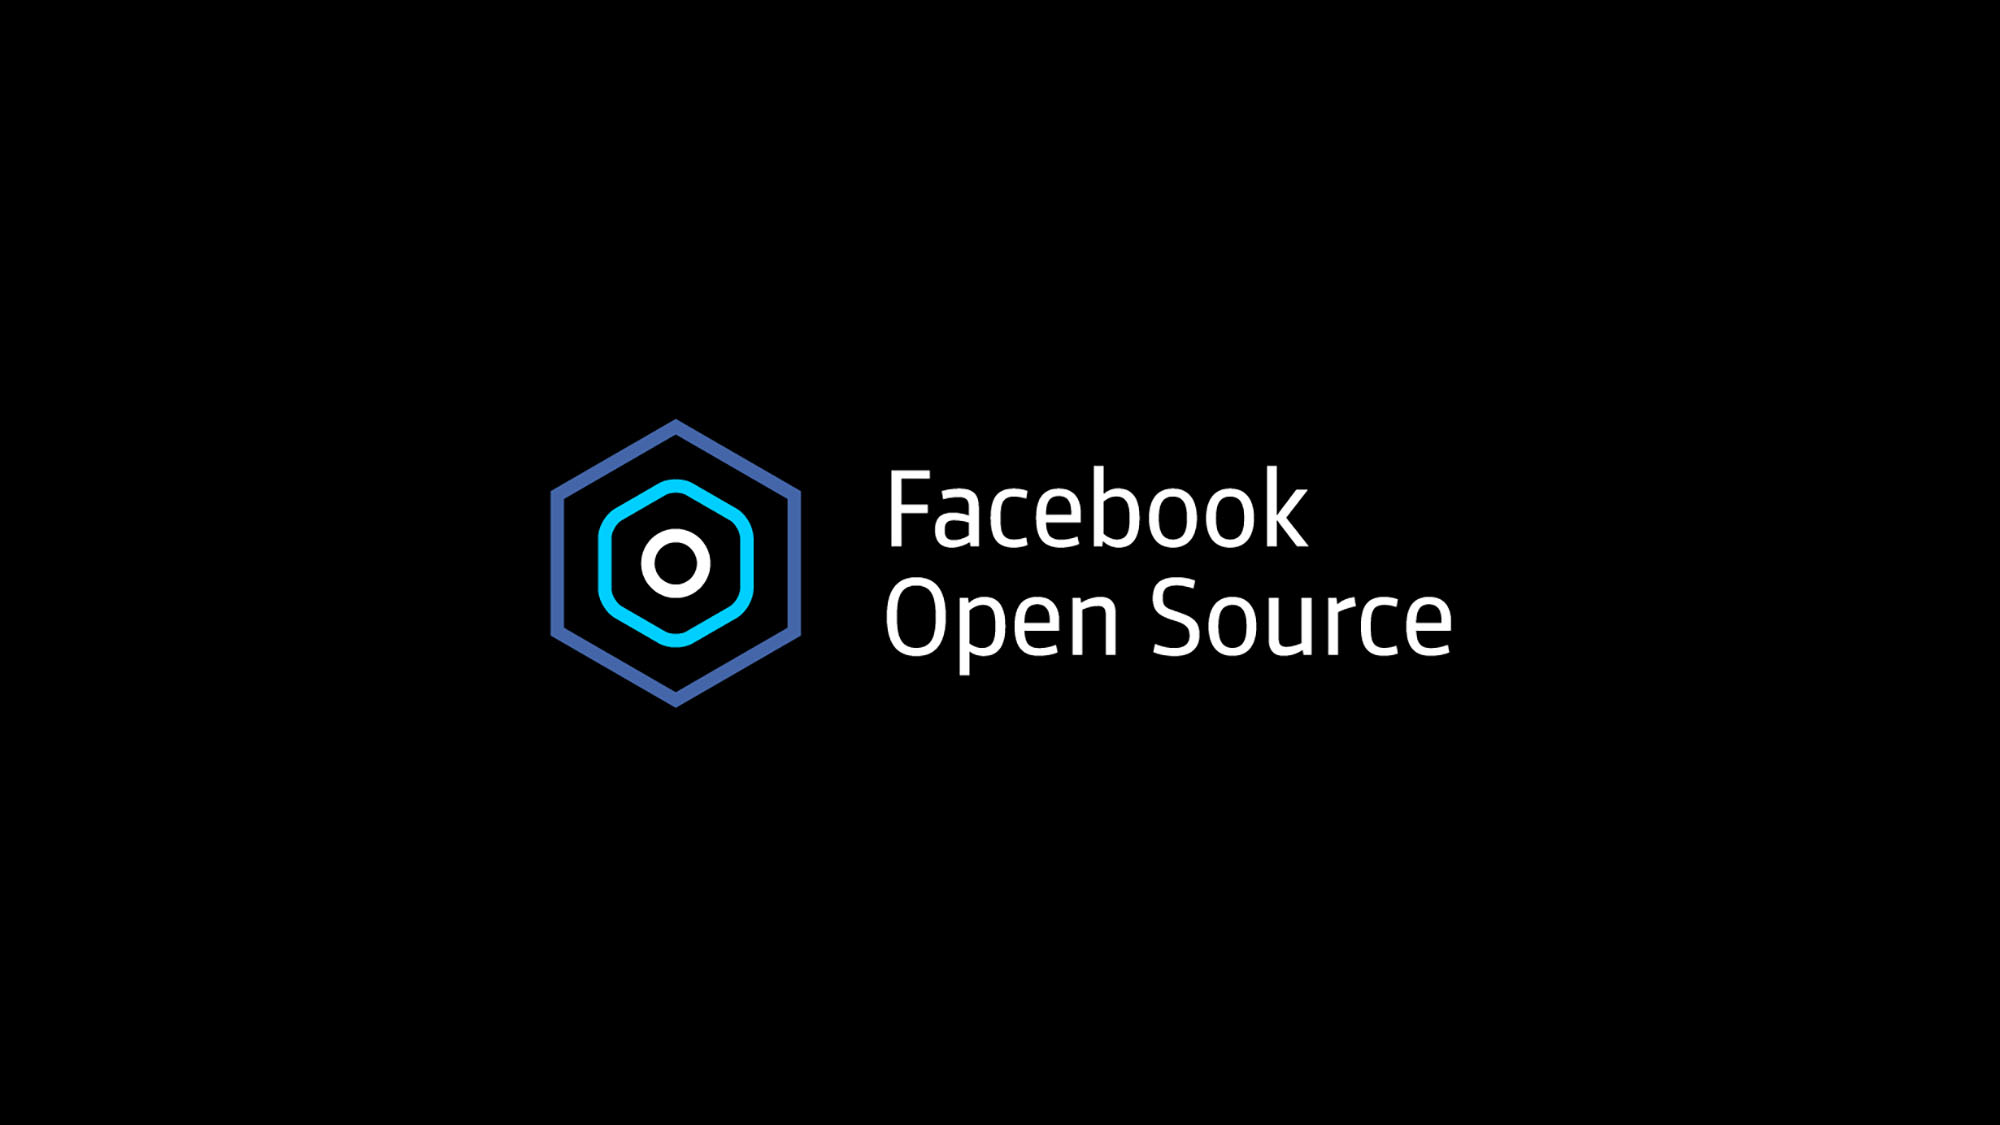 F8 Open source releases at F8 2019